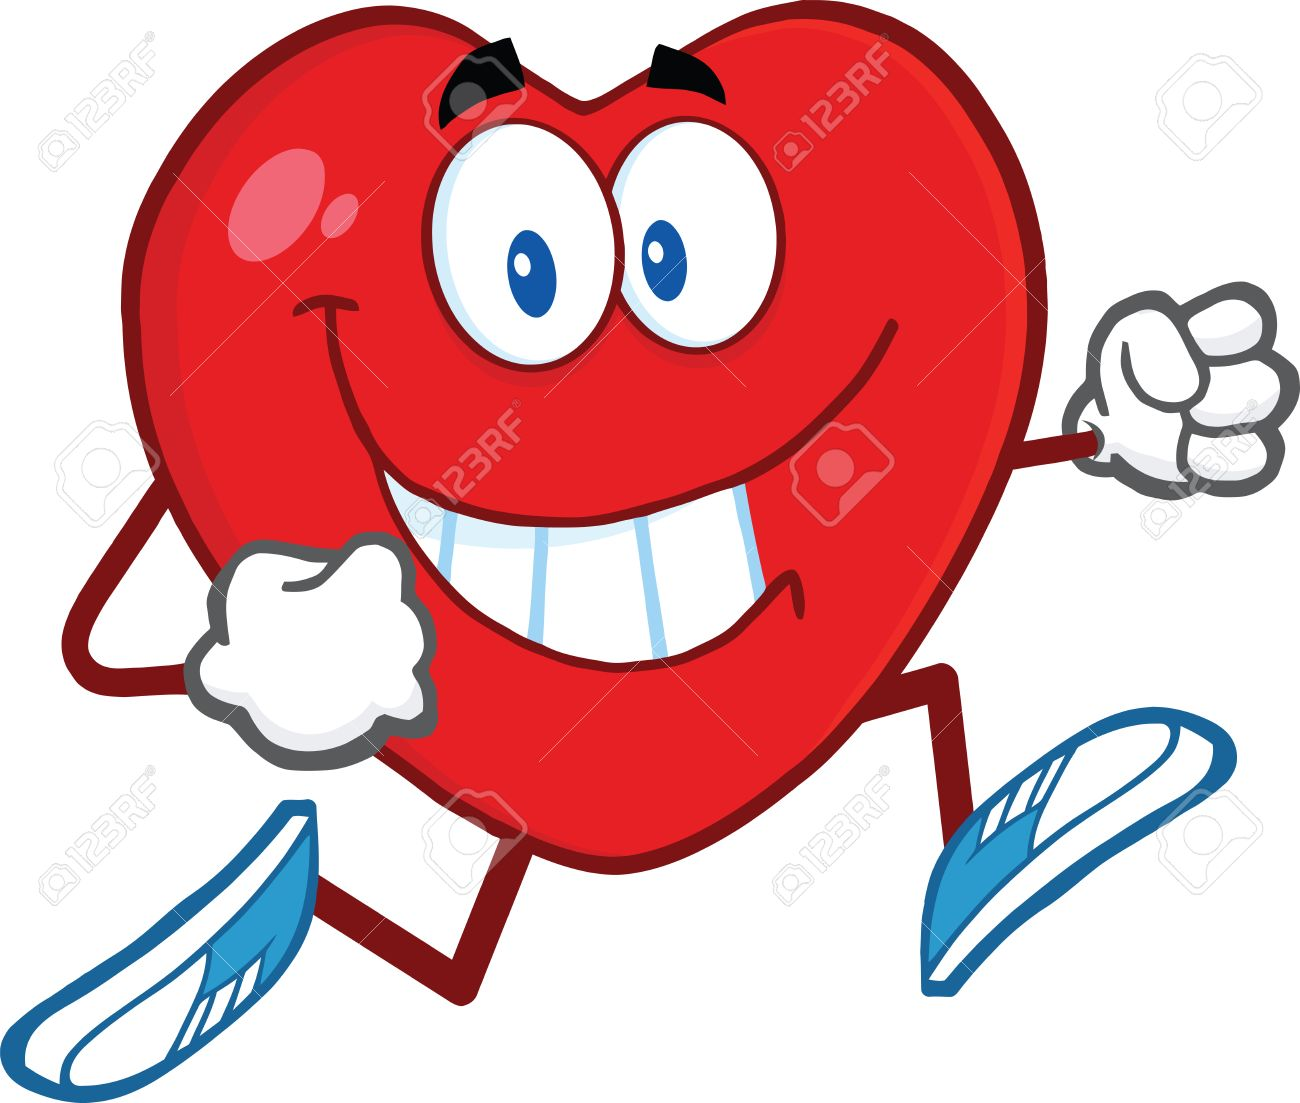 1300x1103 Smiling Heart Cartoon Mascot Character Running Illustration